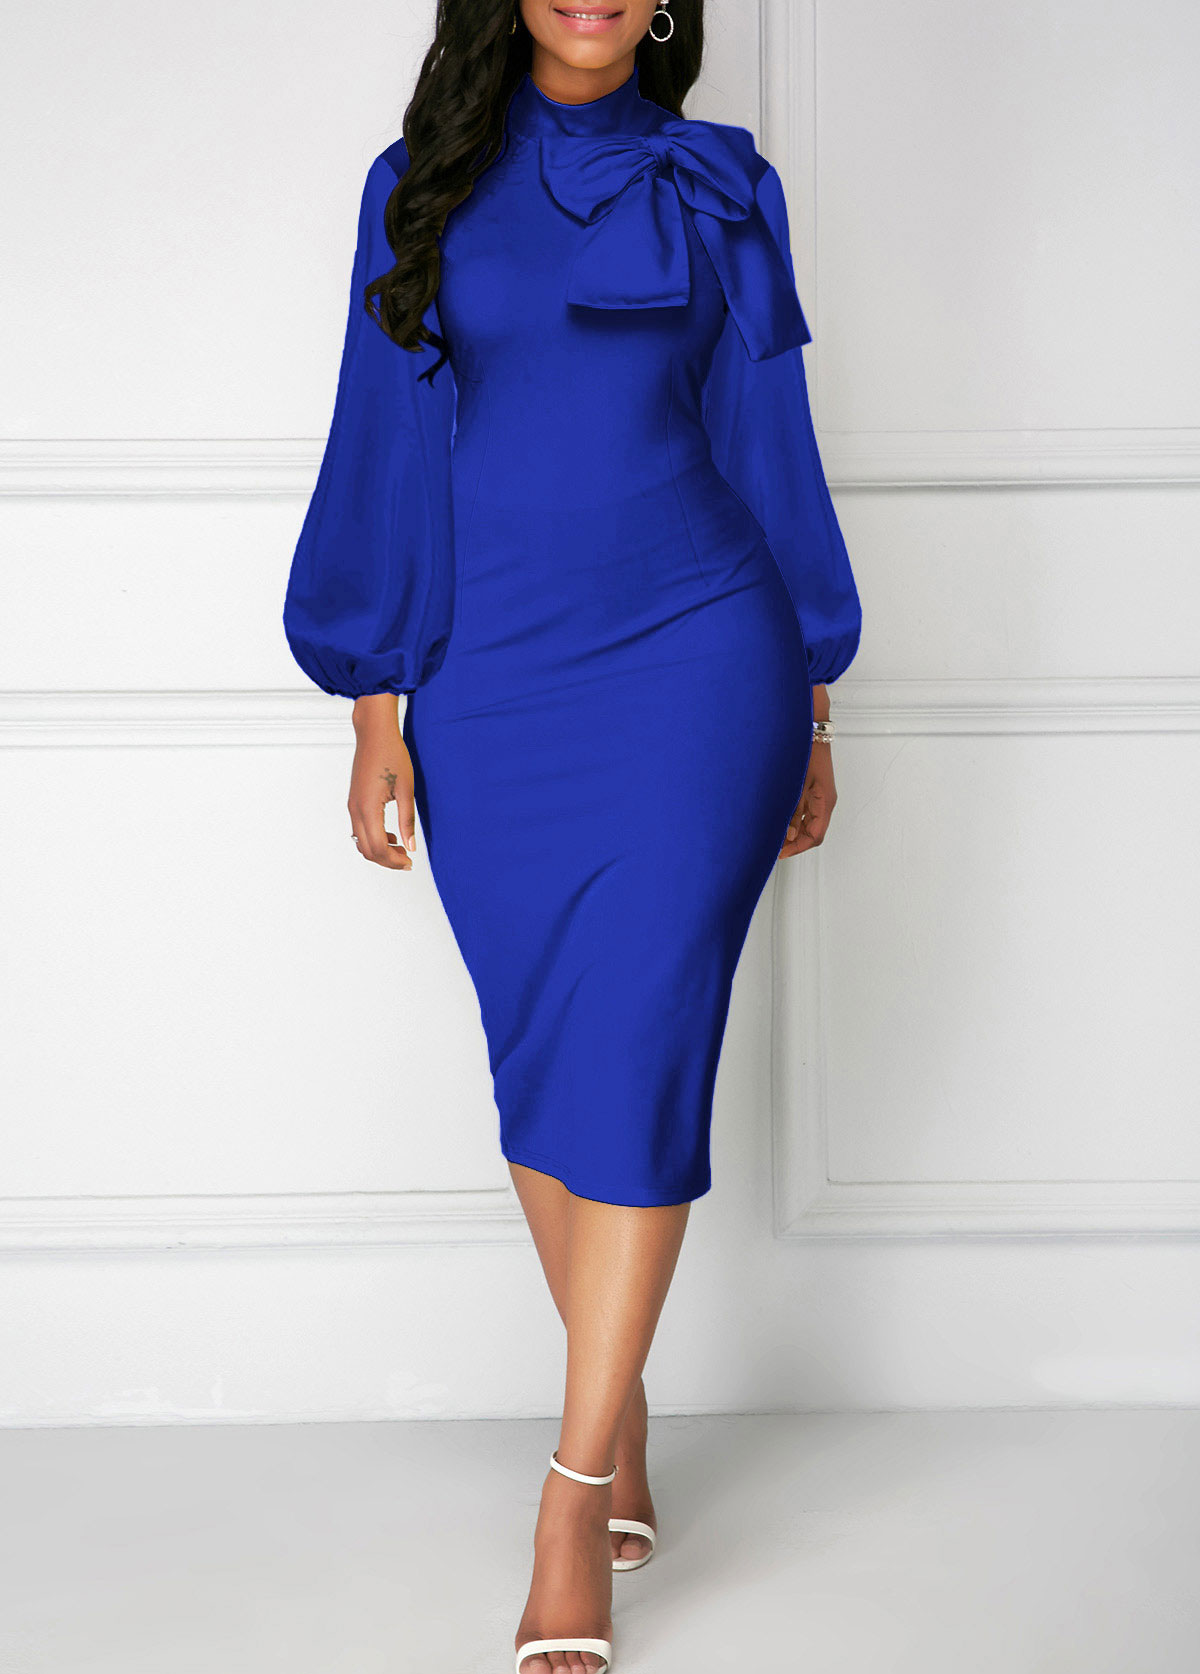 Bowknot Neck Royal Blue Lantern Sleeve Sheath Dress